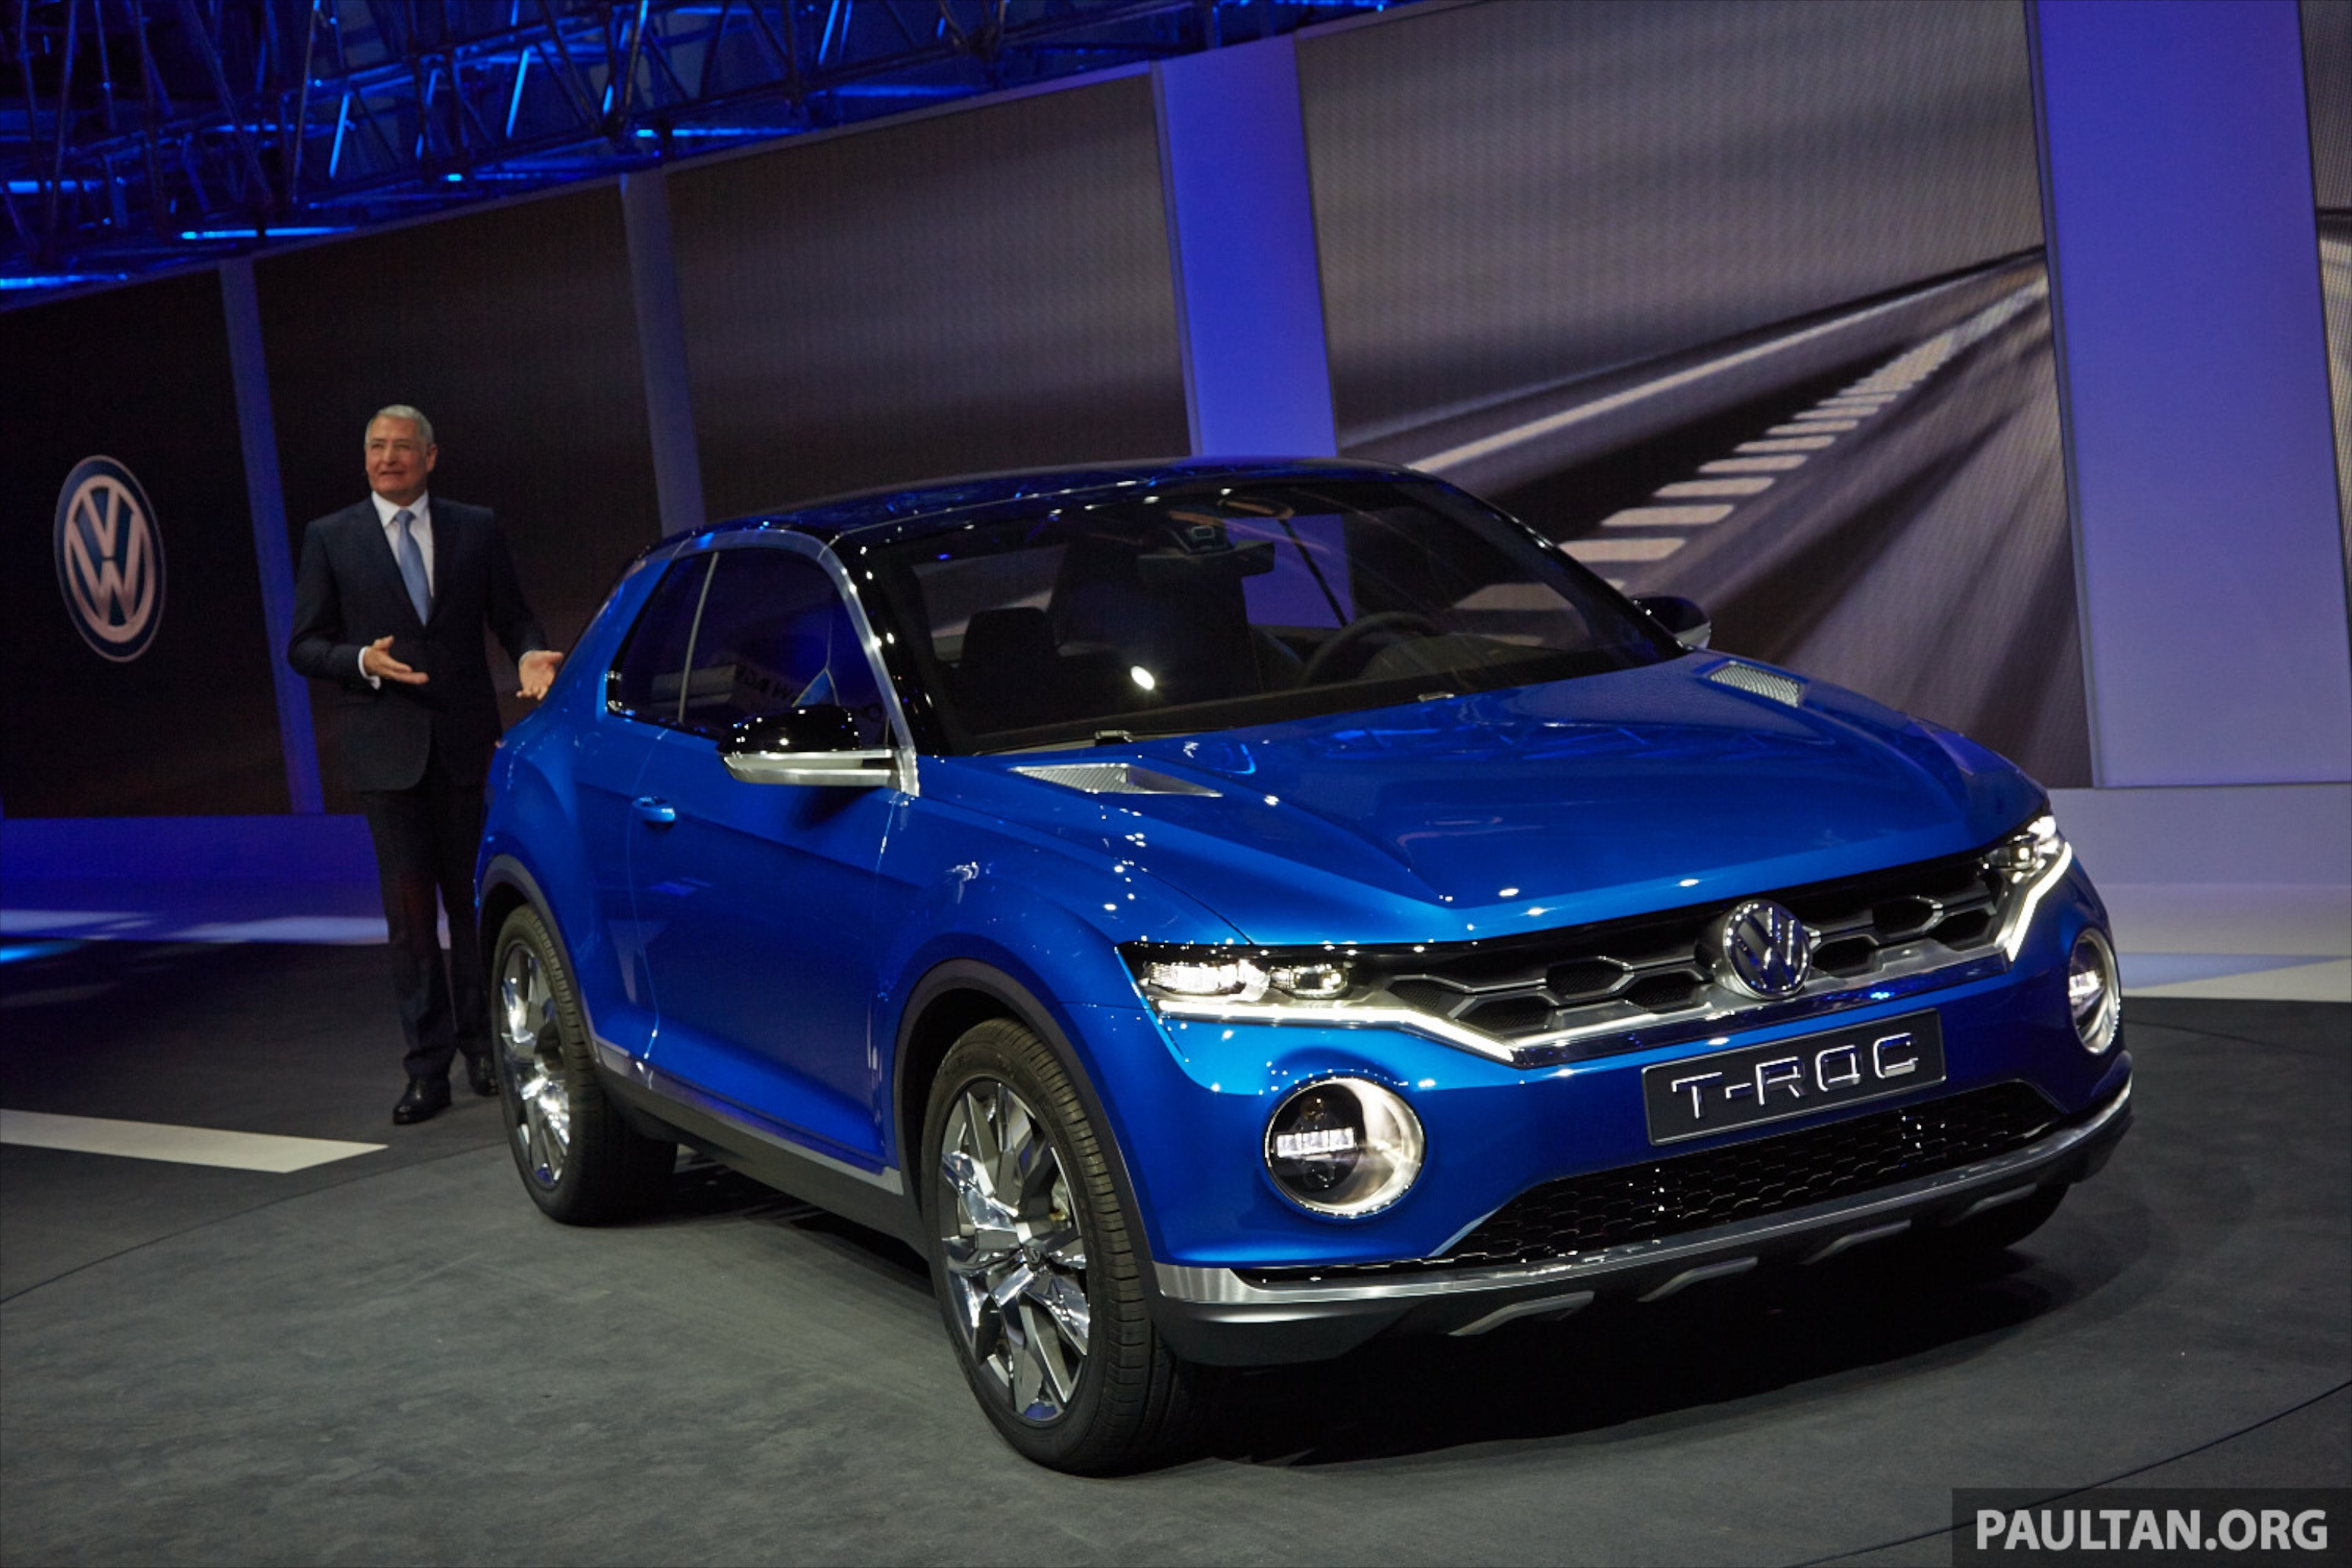 Volkswagen T-ROC Concept previews upcoming SUV Paul Tan - Image 232483